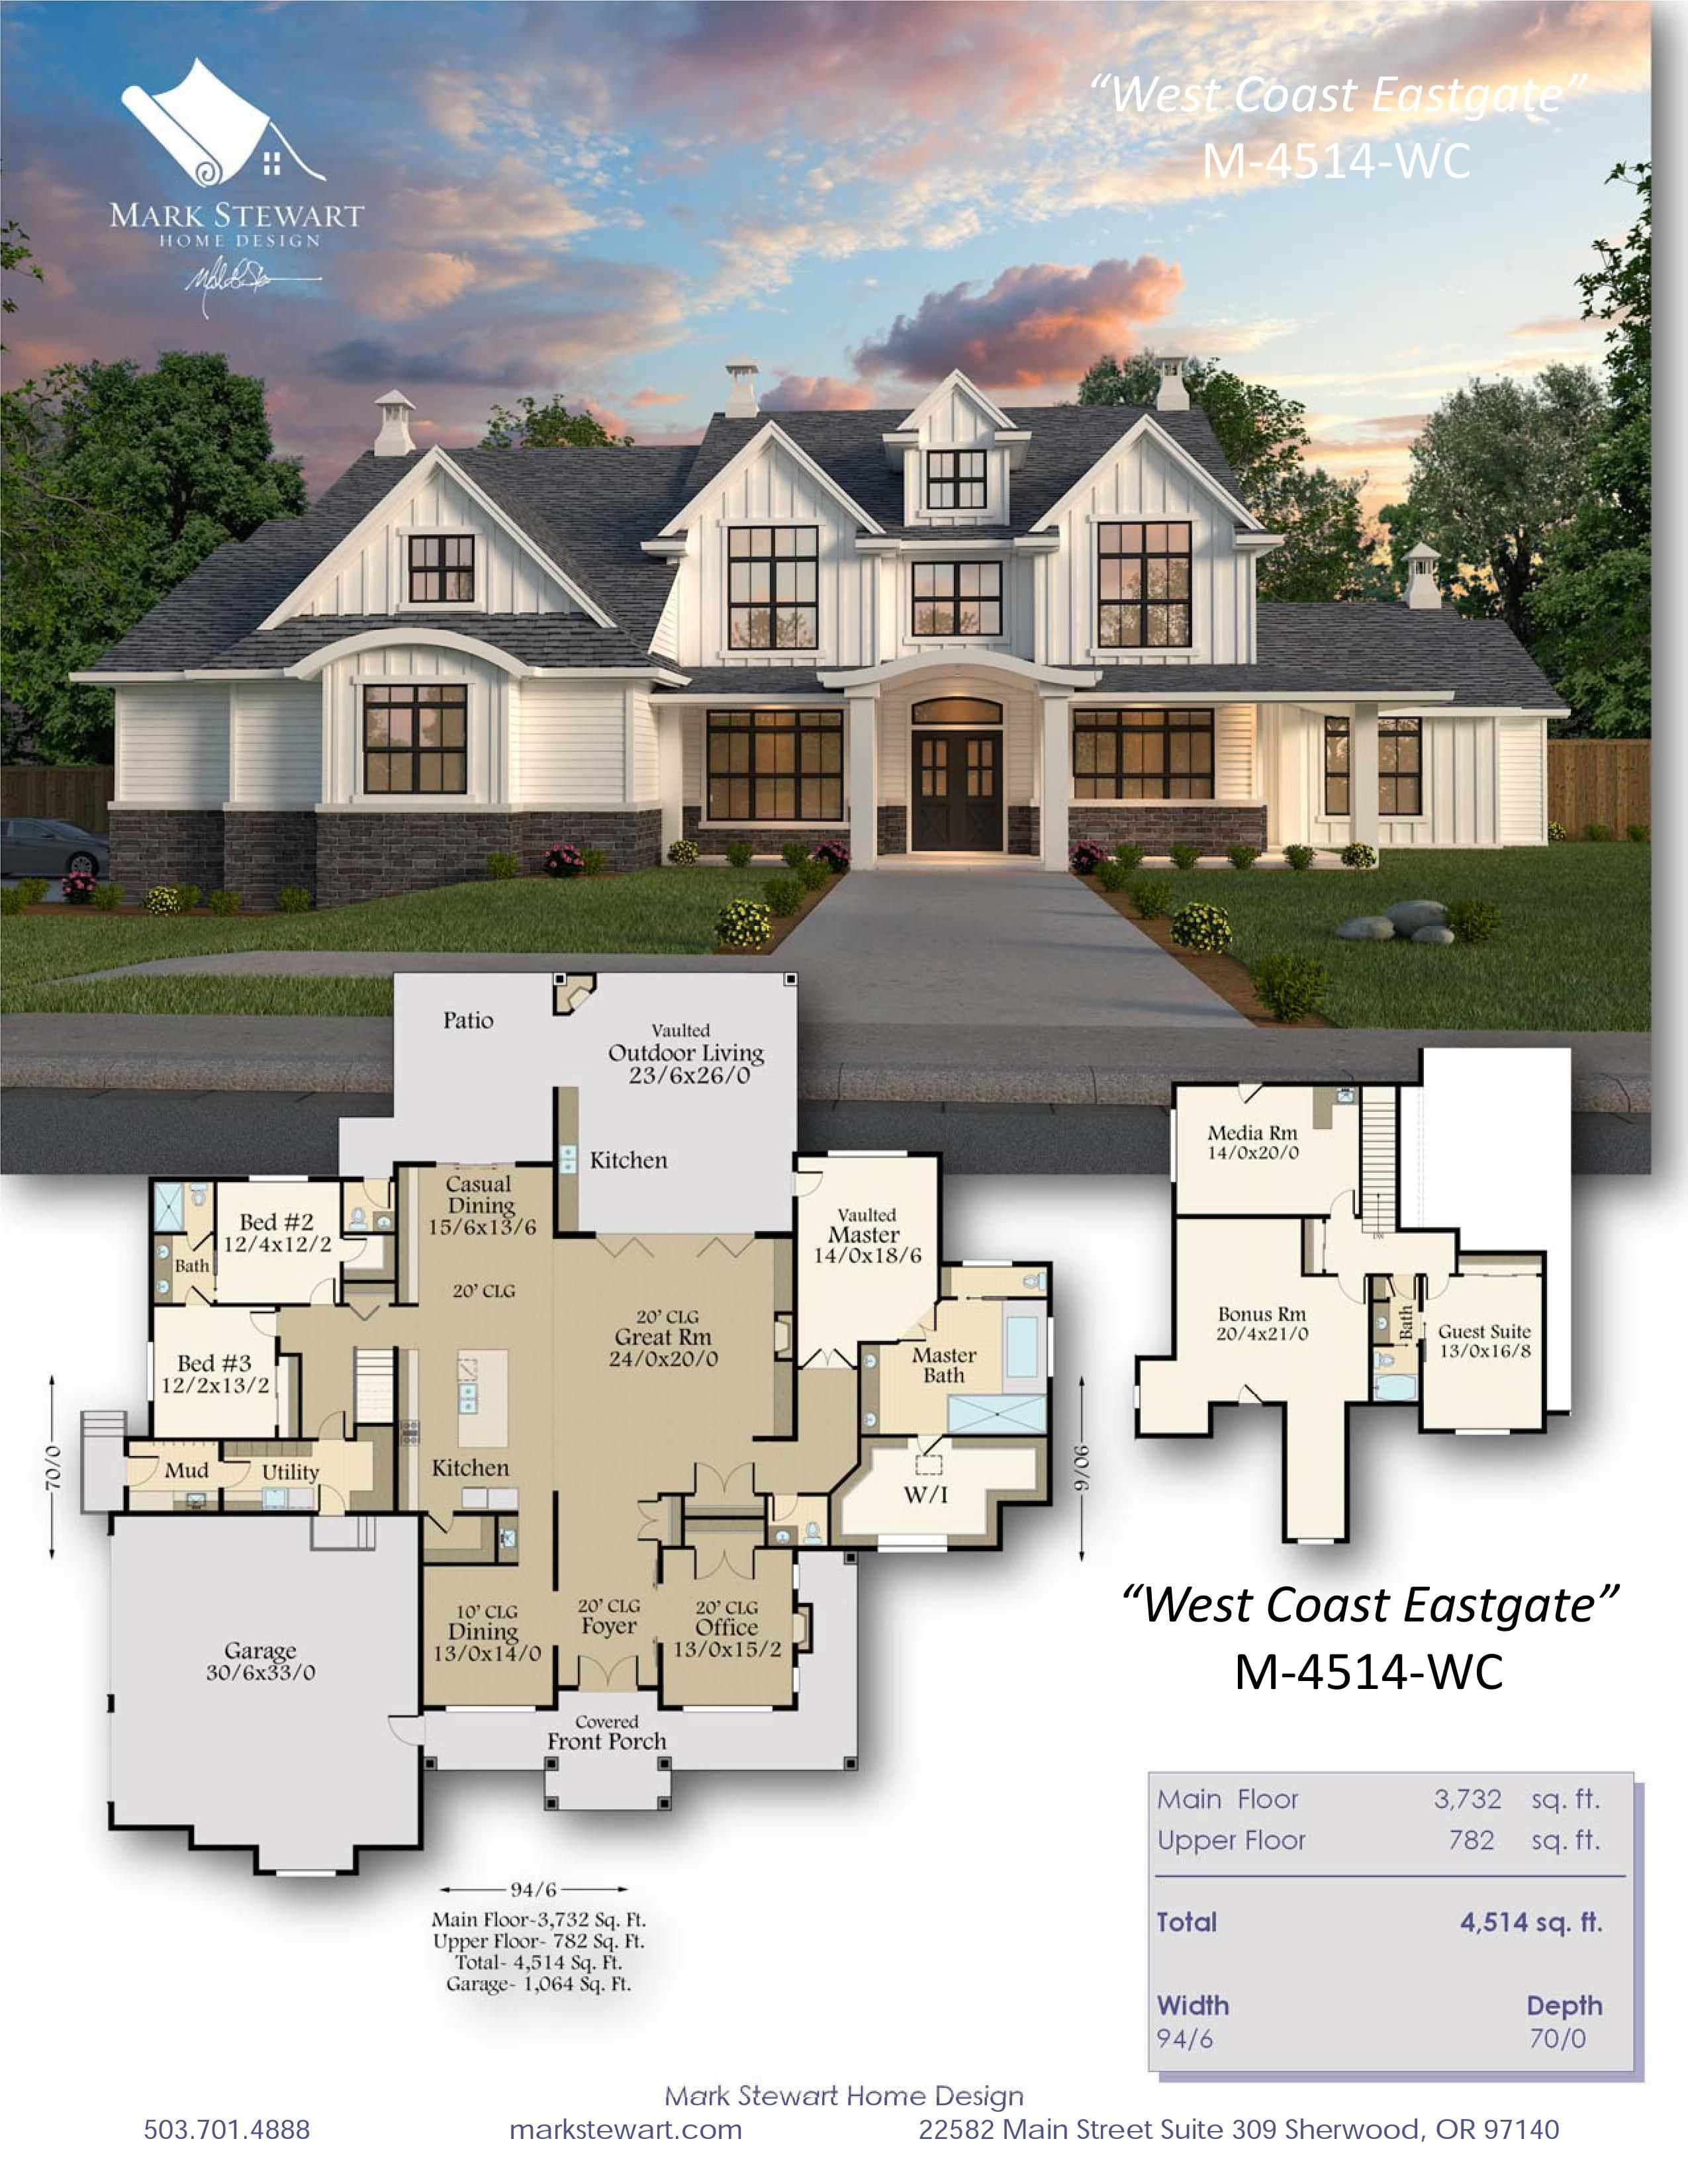 West Coast Eastgate House Plan in 2020 Dream house plans